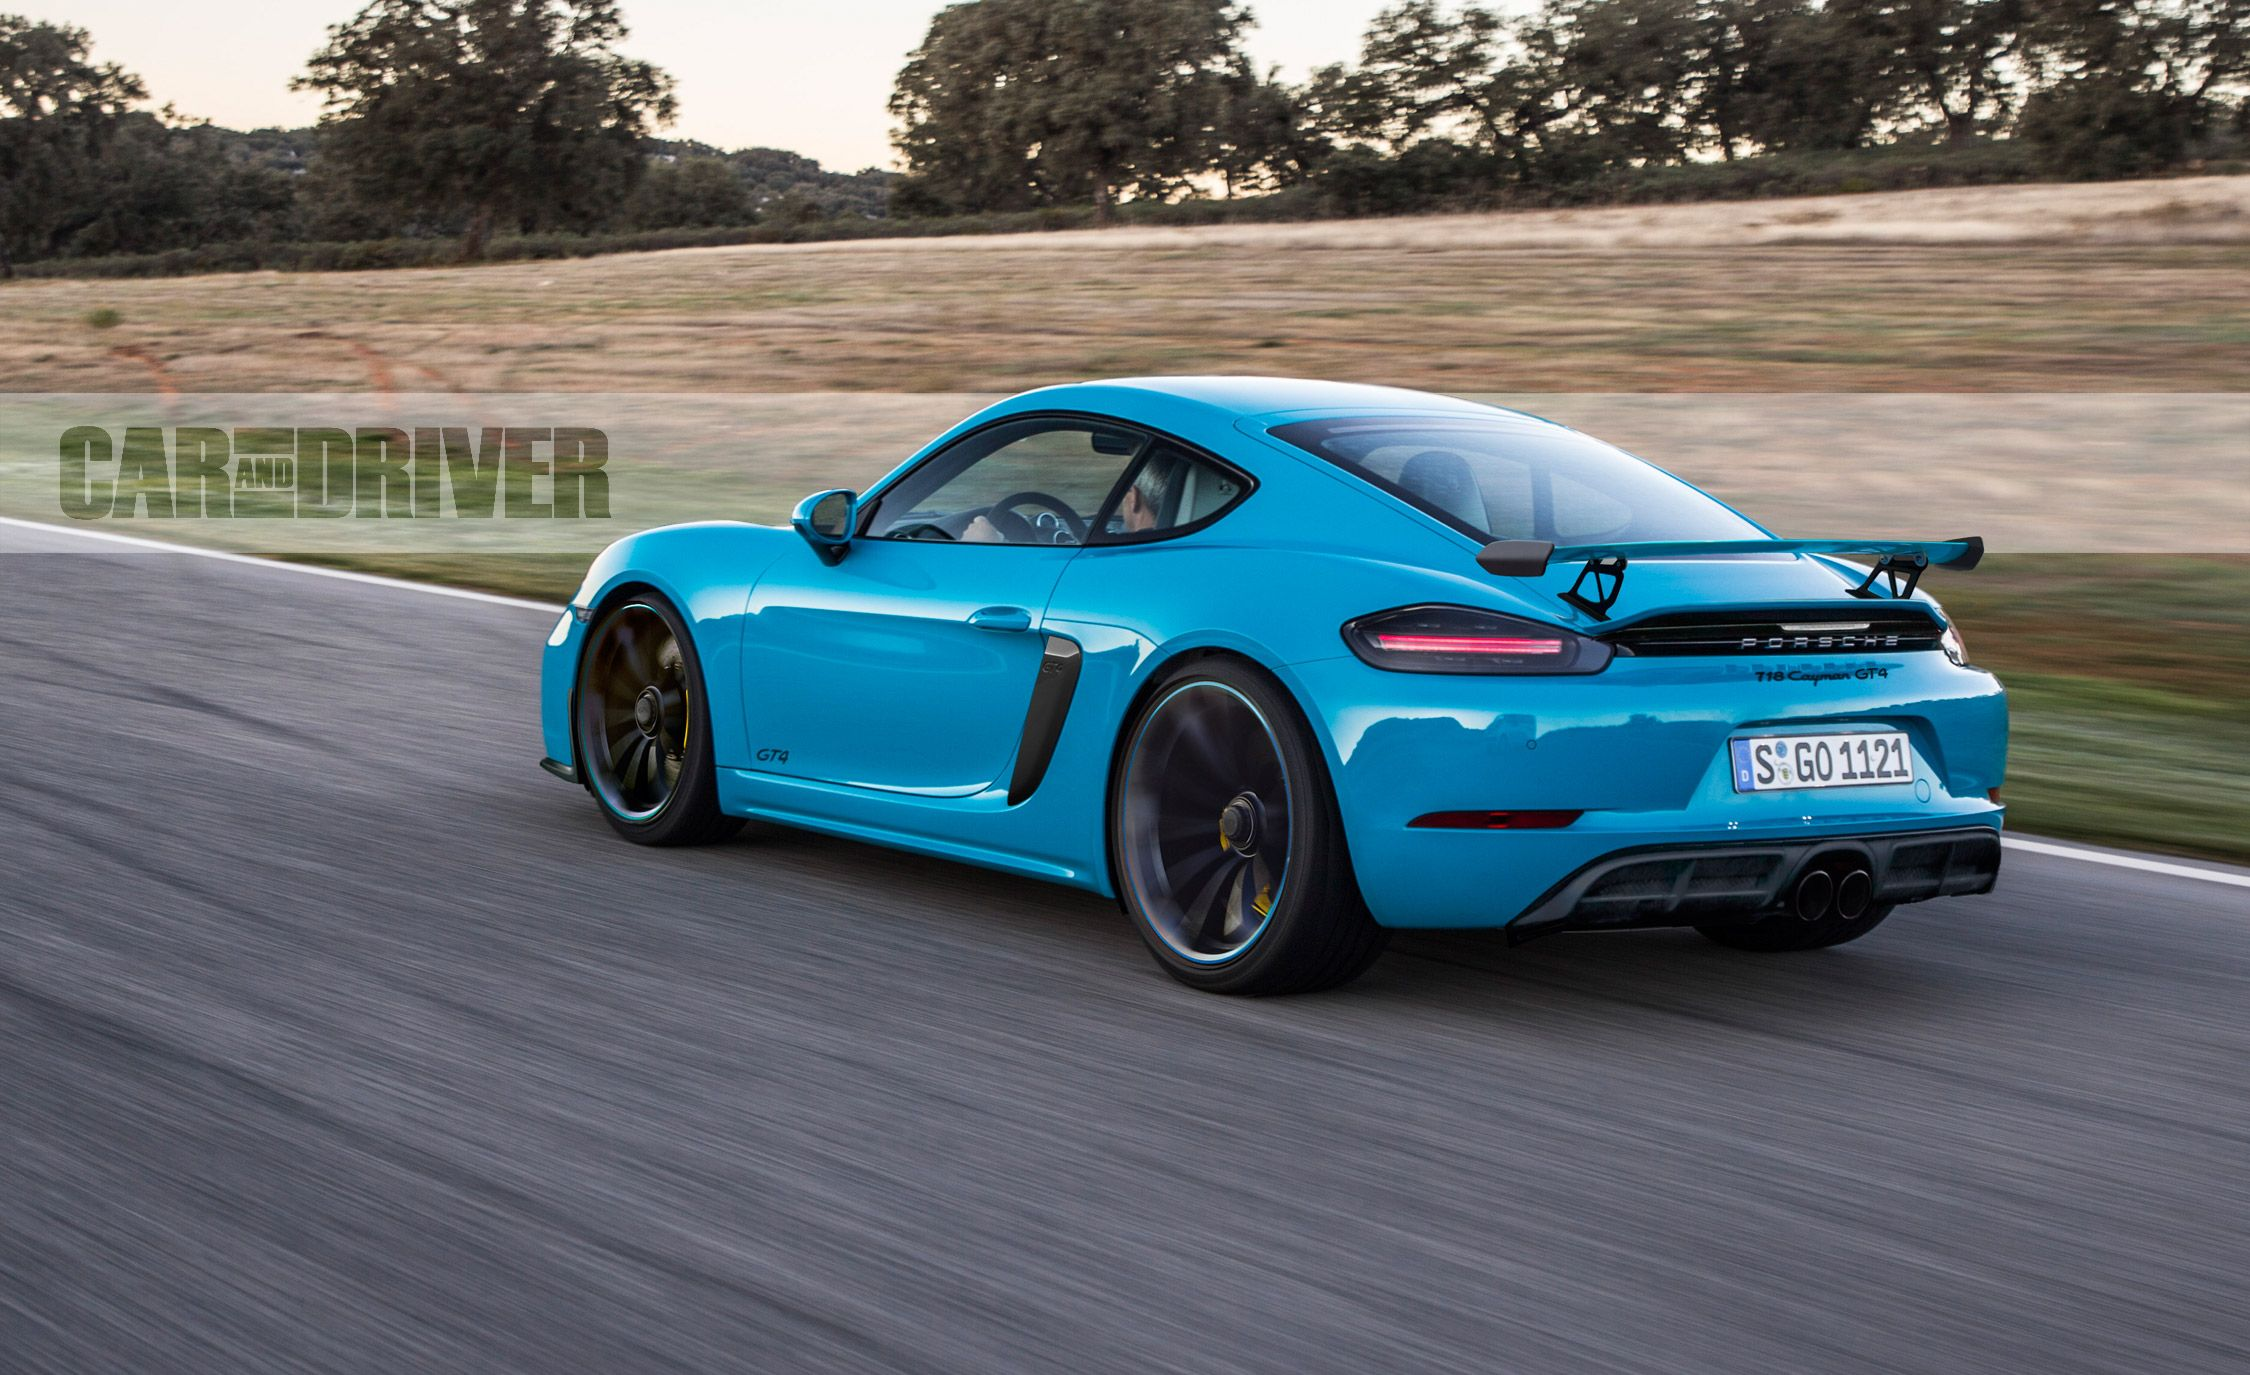 2019 porsche 718 cayman gt4: the 911 gt3's little brother is back